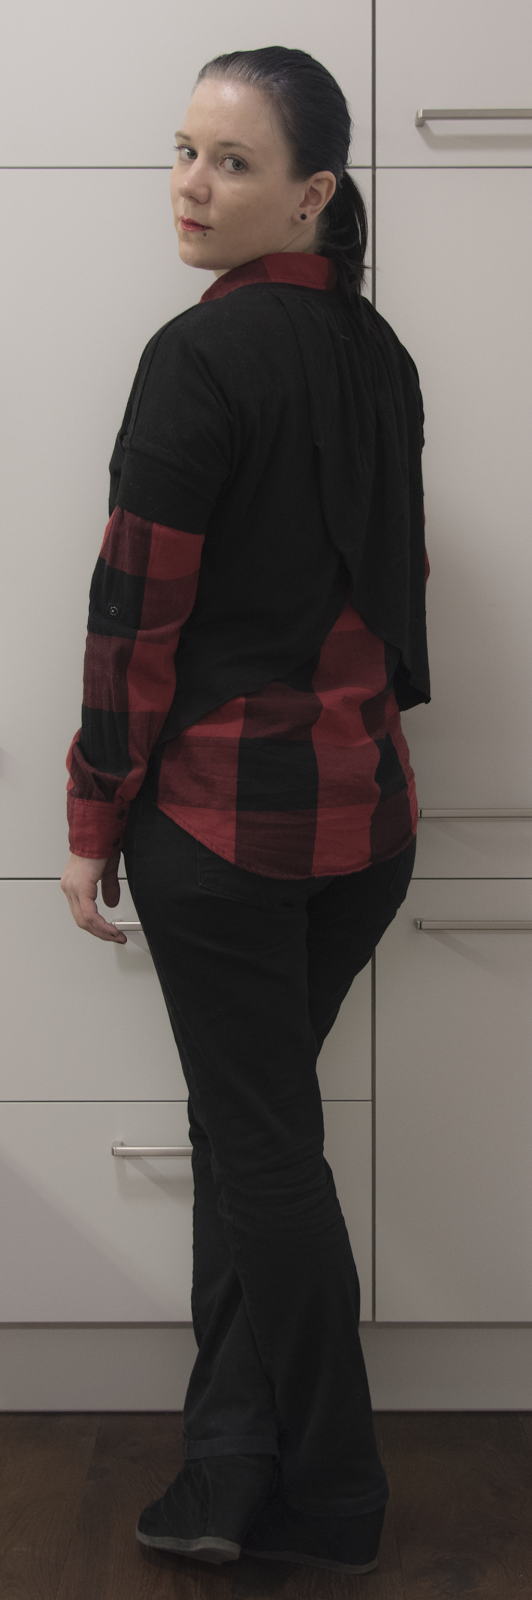 Outfit Fashion Grunge Goth Dark Black Plaid shirt jeans boots necklace red lipstick sleek hair